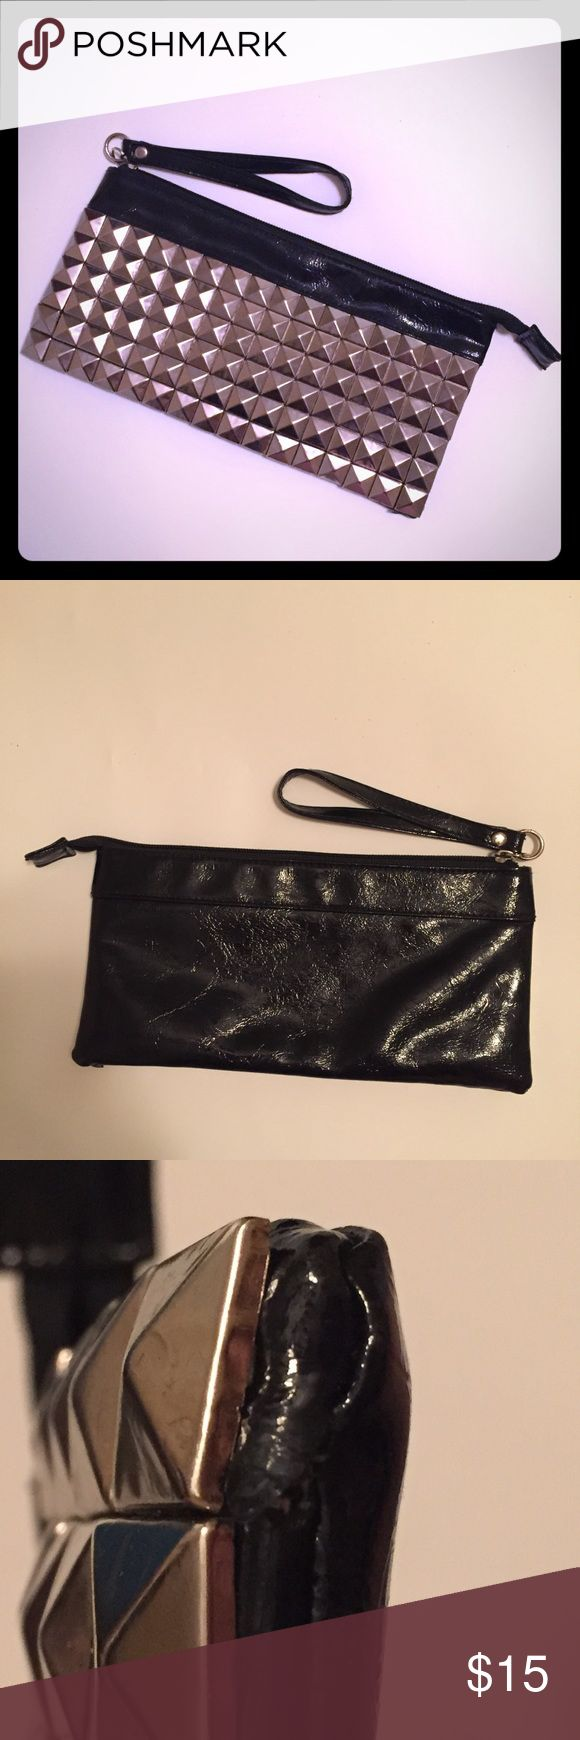 Rockstar Studded Clutch Wristlet Purse Edgy but understated clutch. Covered in gunmetal pyramid studs. Gives your outfit a little edge. Wore this to a lot of concerts. Would also be great to wear at a Halloween costume party. A little wear on the right bottom corner (see pic). Inside is very clean. Has a small inner zip pocket. EUC 🚭smoke free home Body Central Bags Clutches & Wristlets